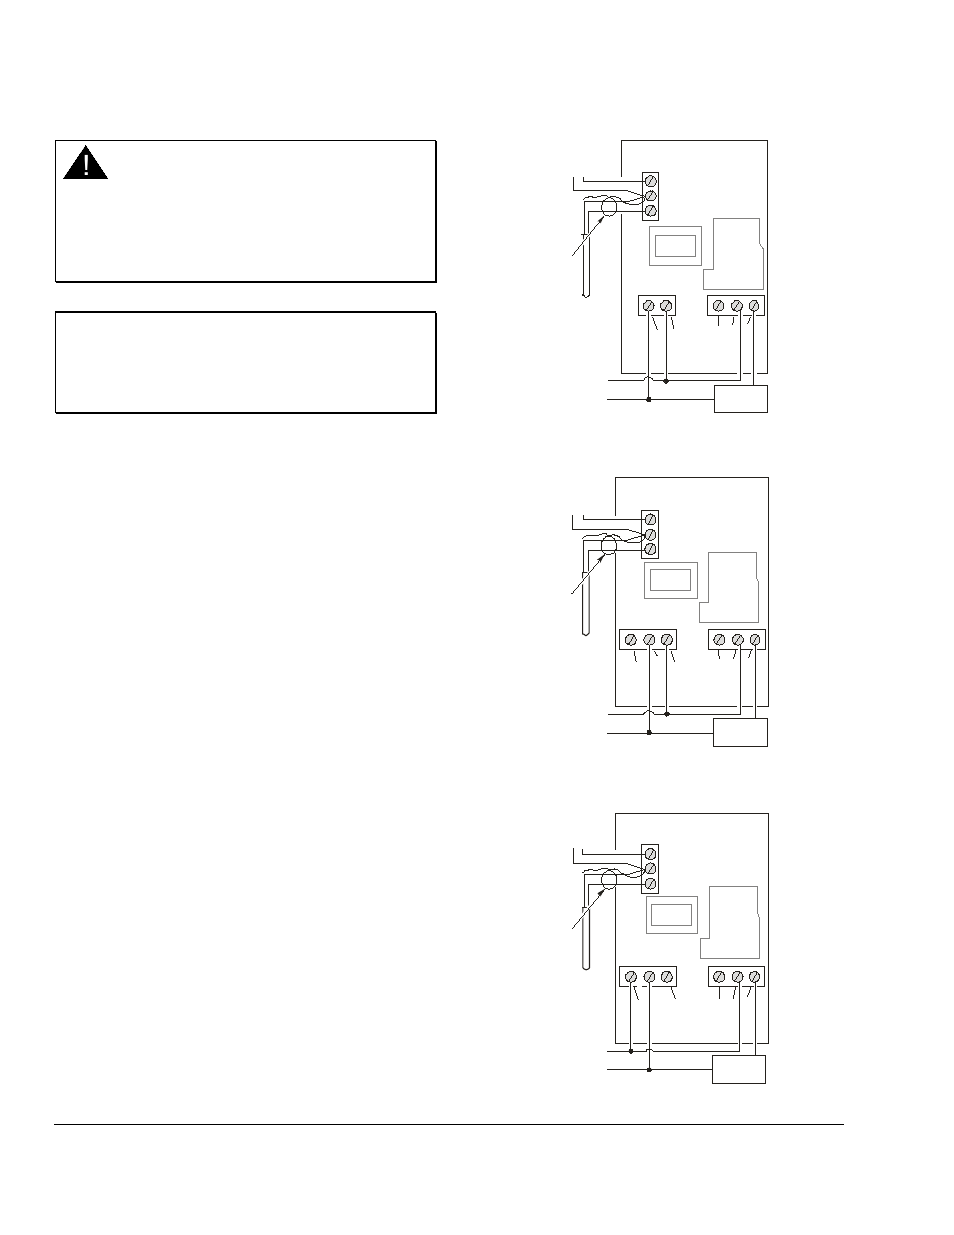 Johnson Controls A419 Wiring Diagram Not Lossing Honeywell Ignition Module Series User Manual Page 6 12 Rh Manualsdir Com Thermostat Pro